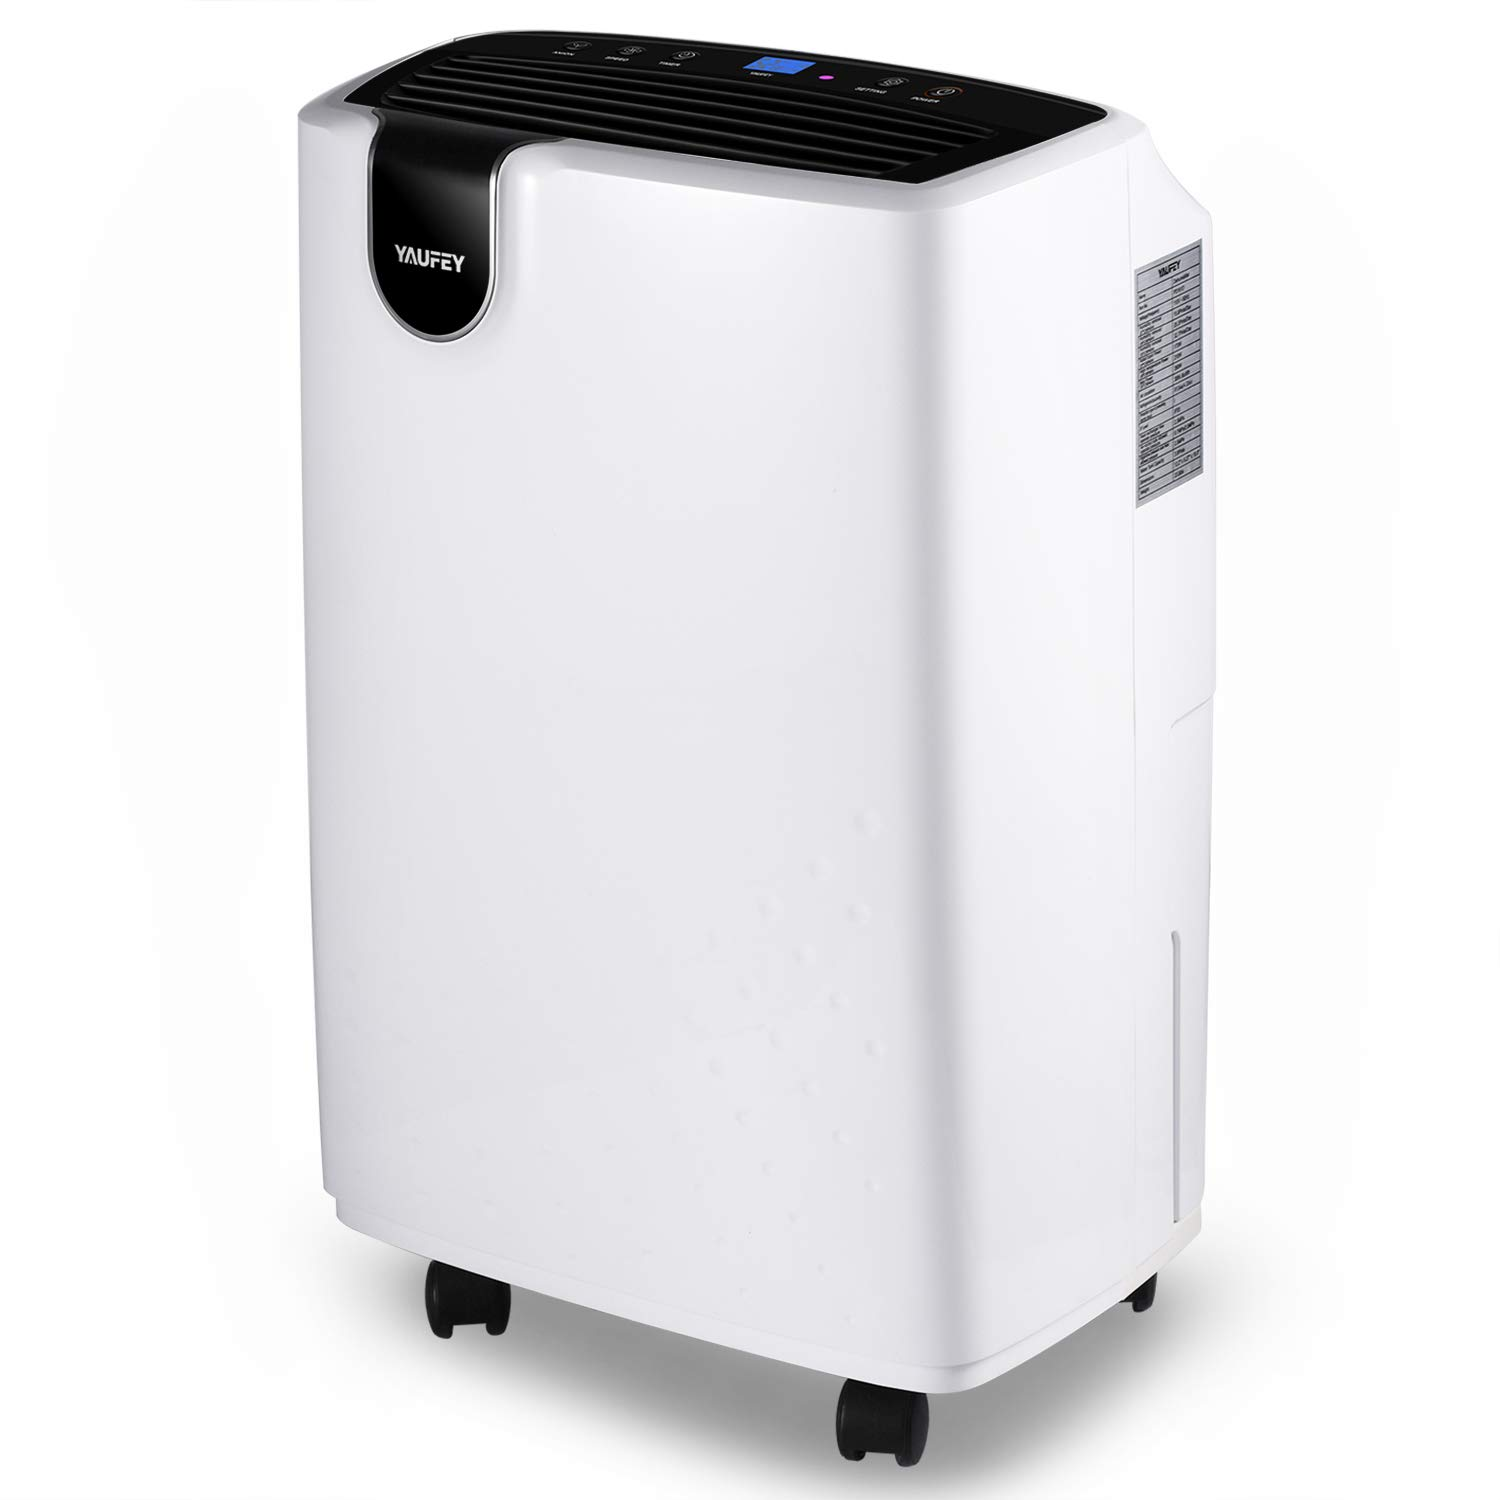 Yaufey 30 Pint Dehumidifier, 4 Gallons/Day Working Capacity, with Continuous Drain Hose and Wheel for Basements Bathroom Bedroom Home - Spaces up to 1500 Sq Ft